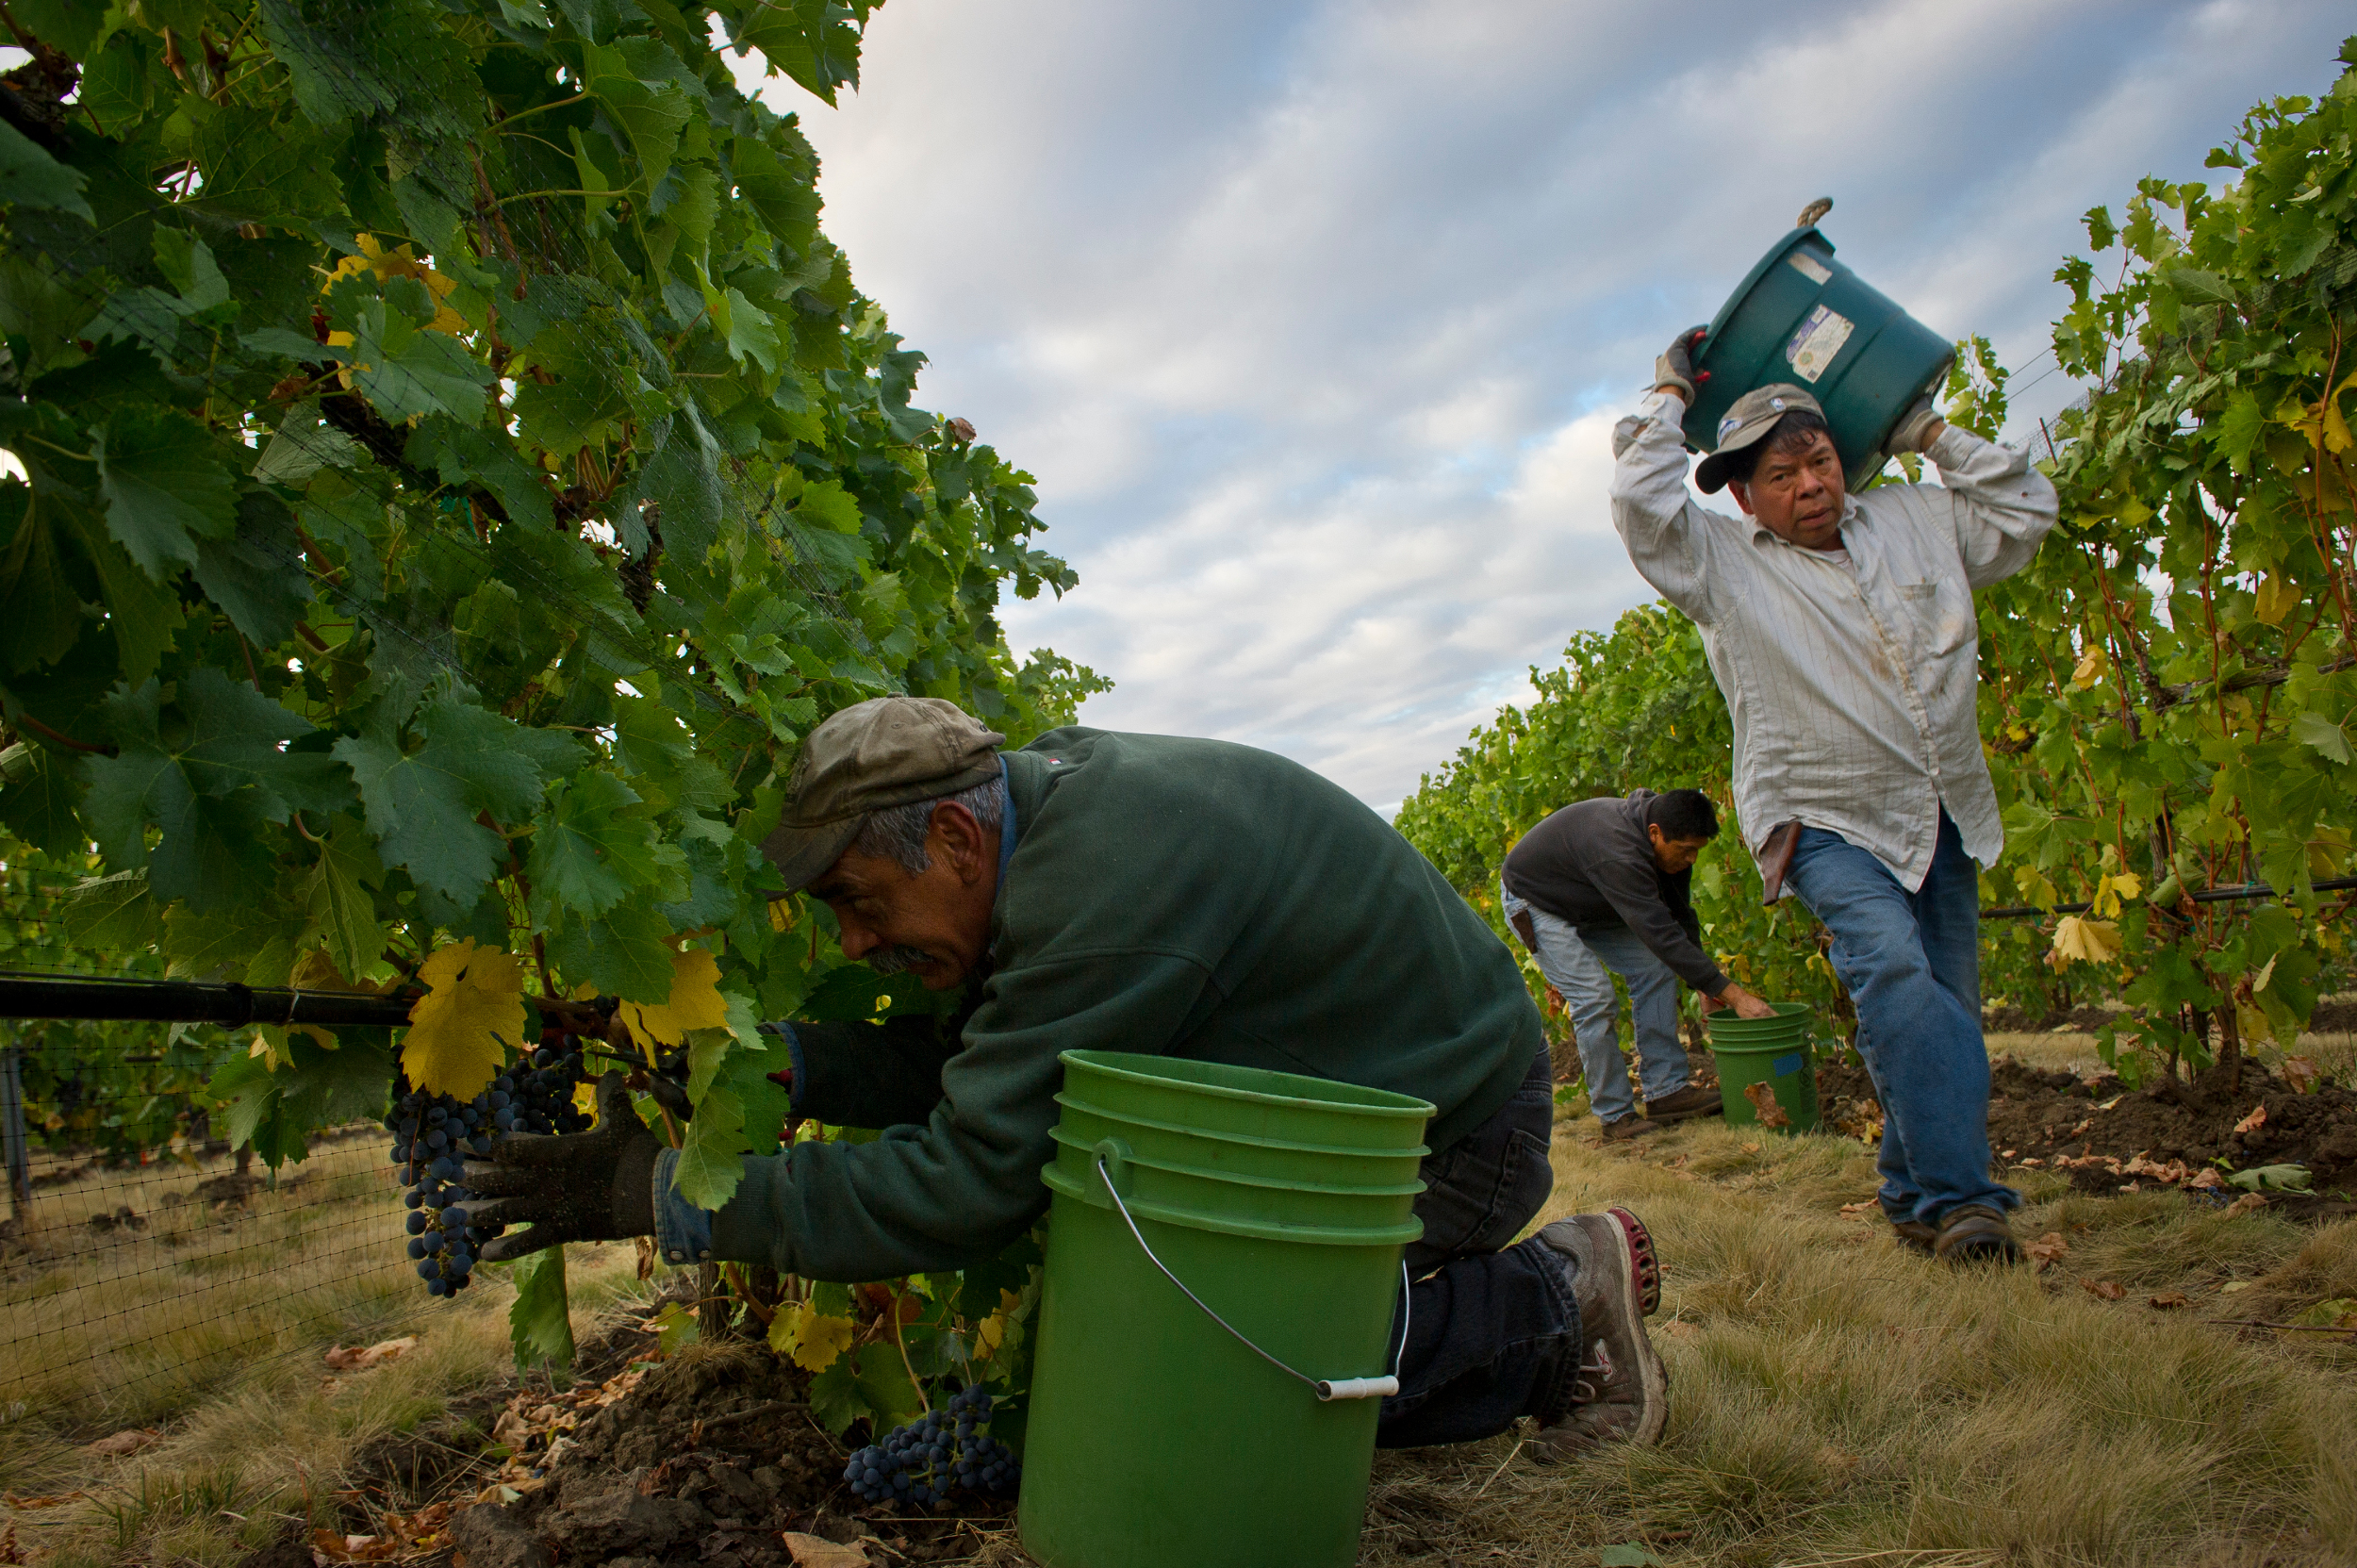 Farm workers harvesting grapes in a vineyard